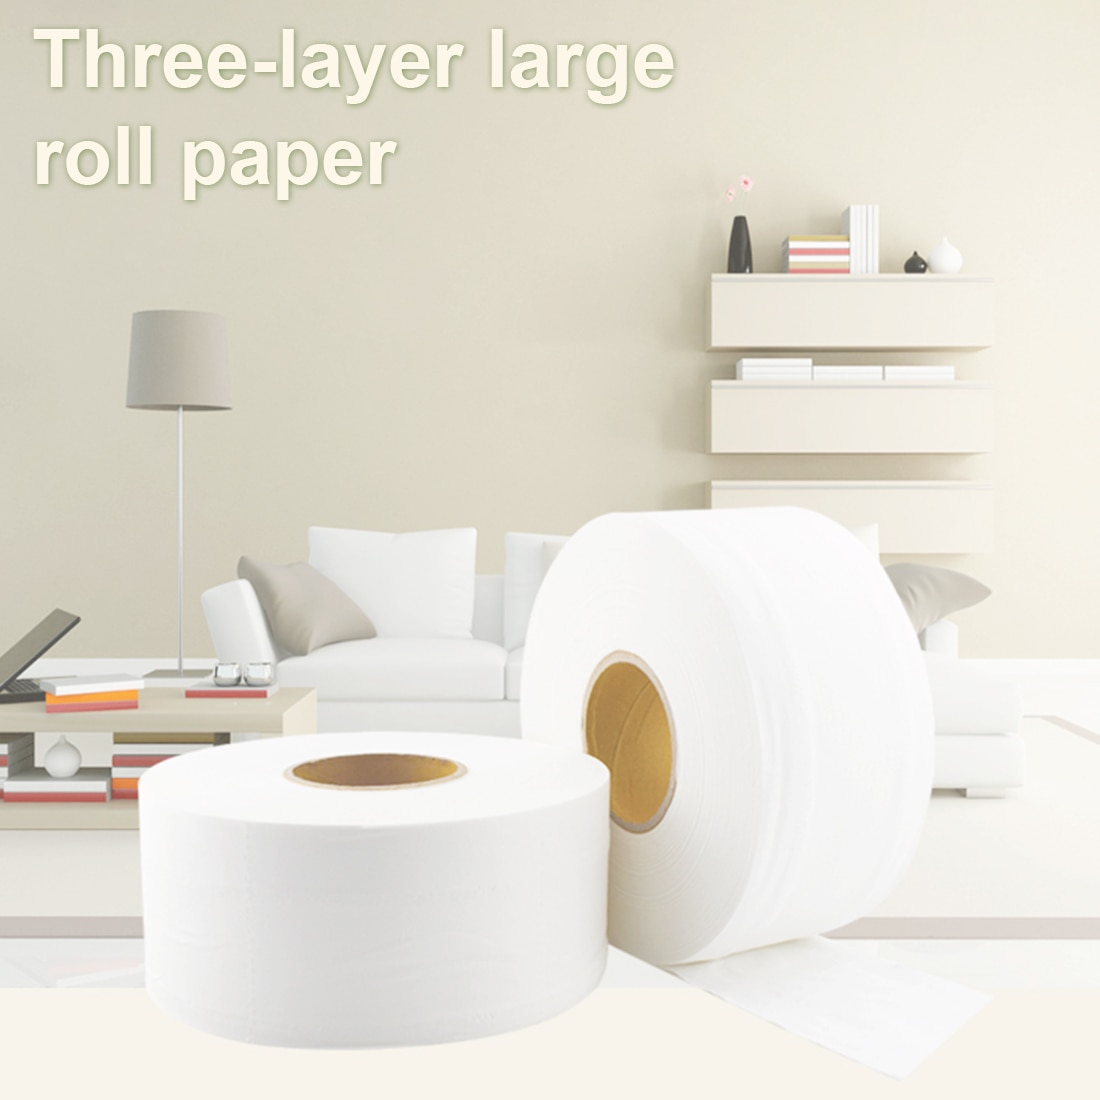 3pcs/bag 900+sheets 580g/Roll Toilet Tissue Home Bath Toilet Roll toilet paper Soft Toilet Paper Paper Towels Water Absorption